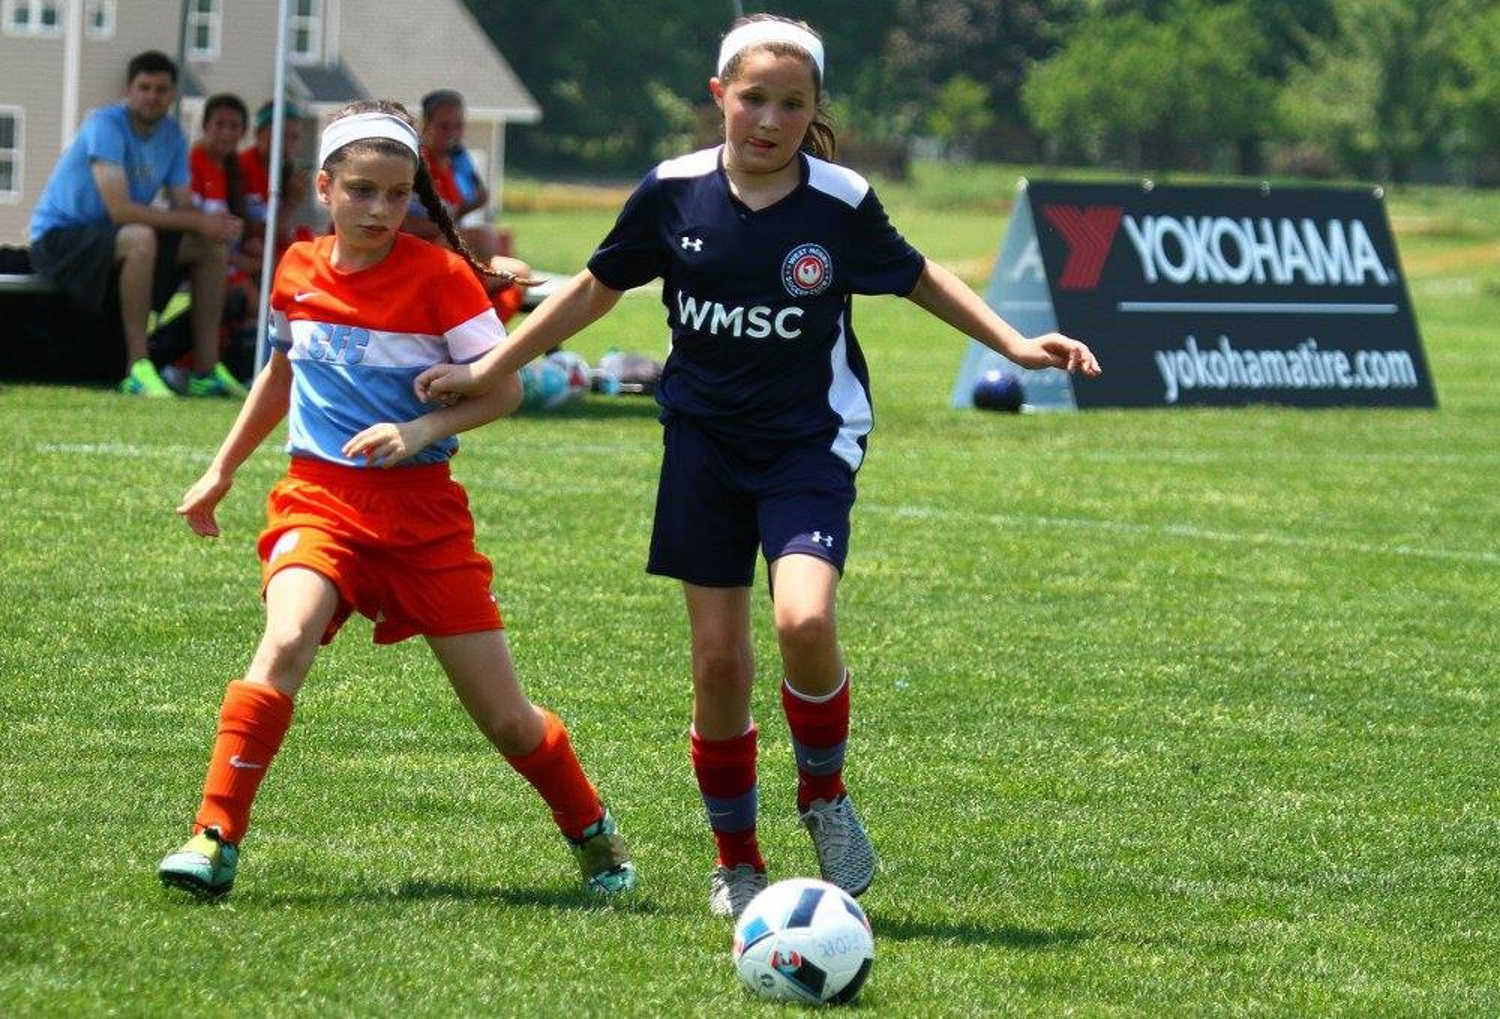 Yokohama Announces Partnership with US Youth Soccer